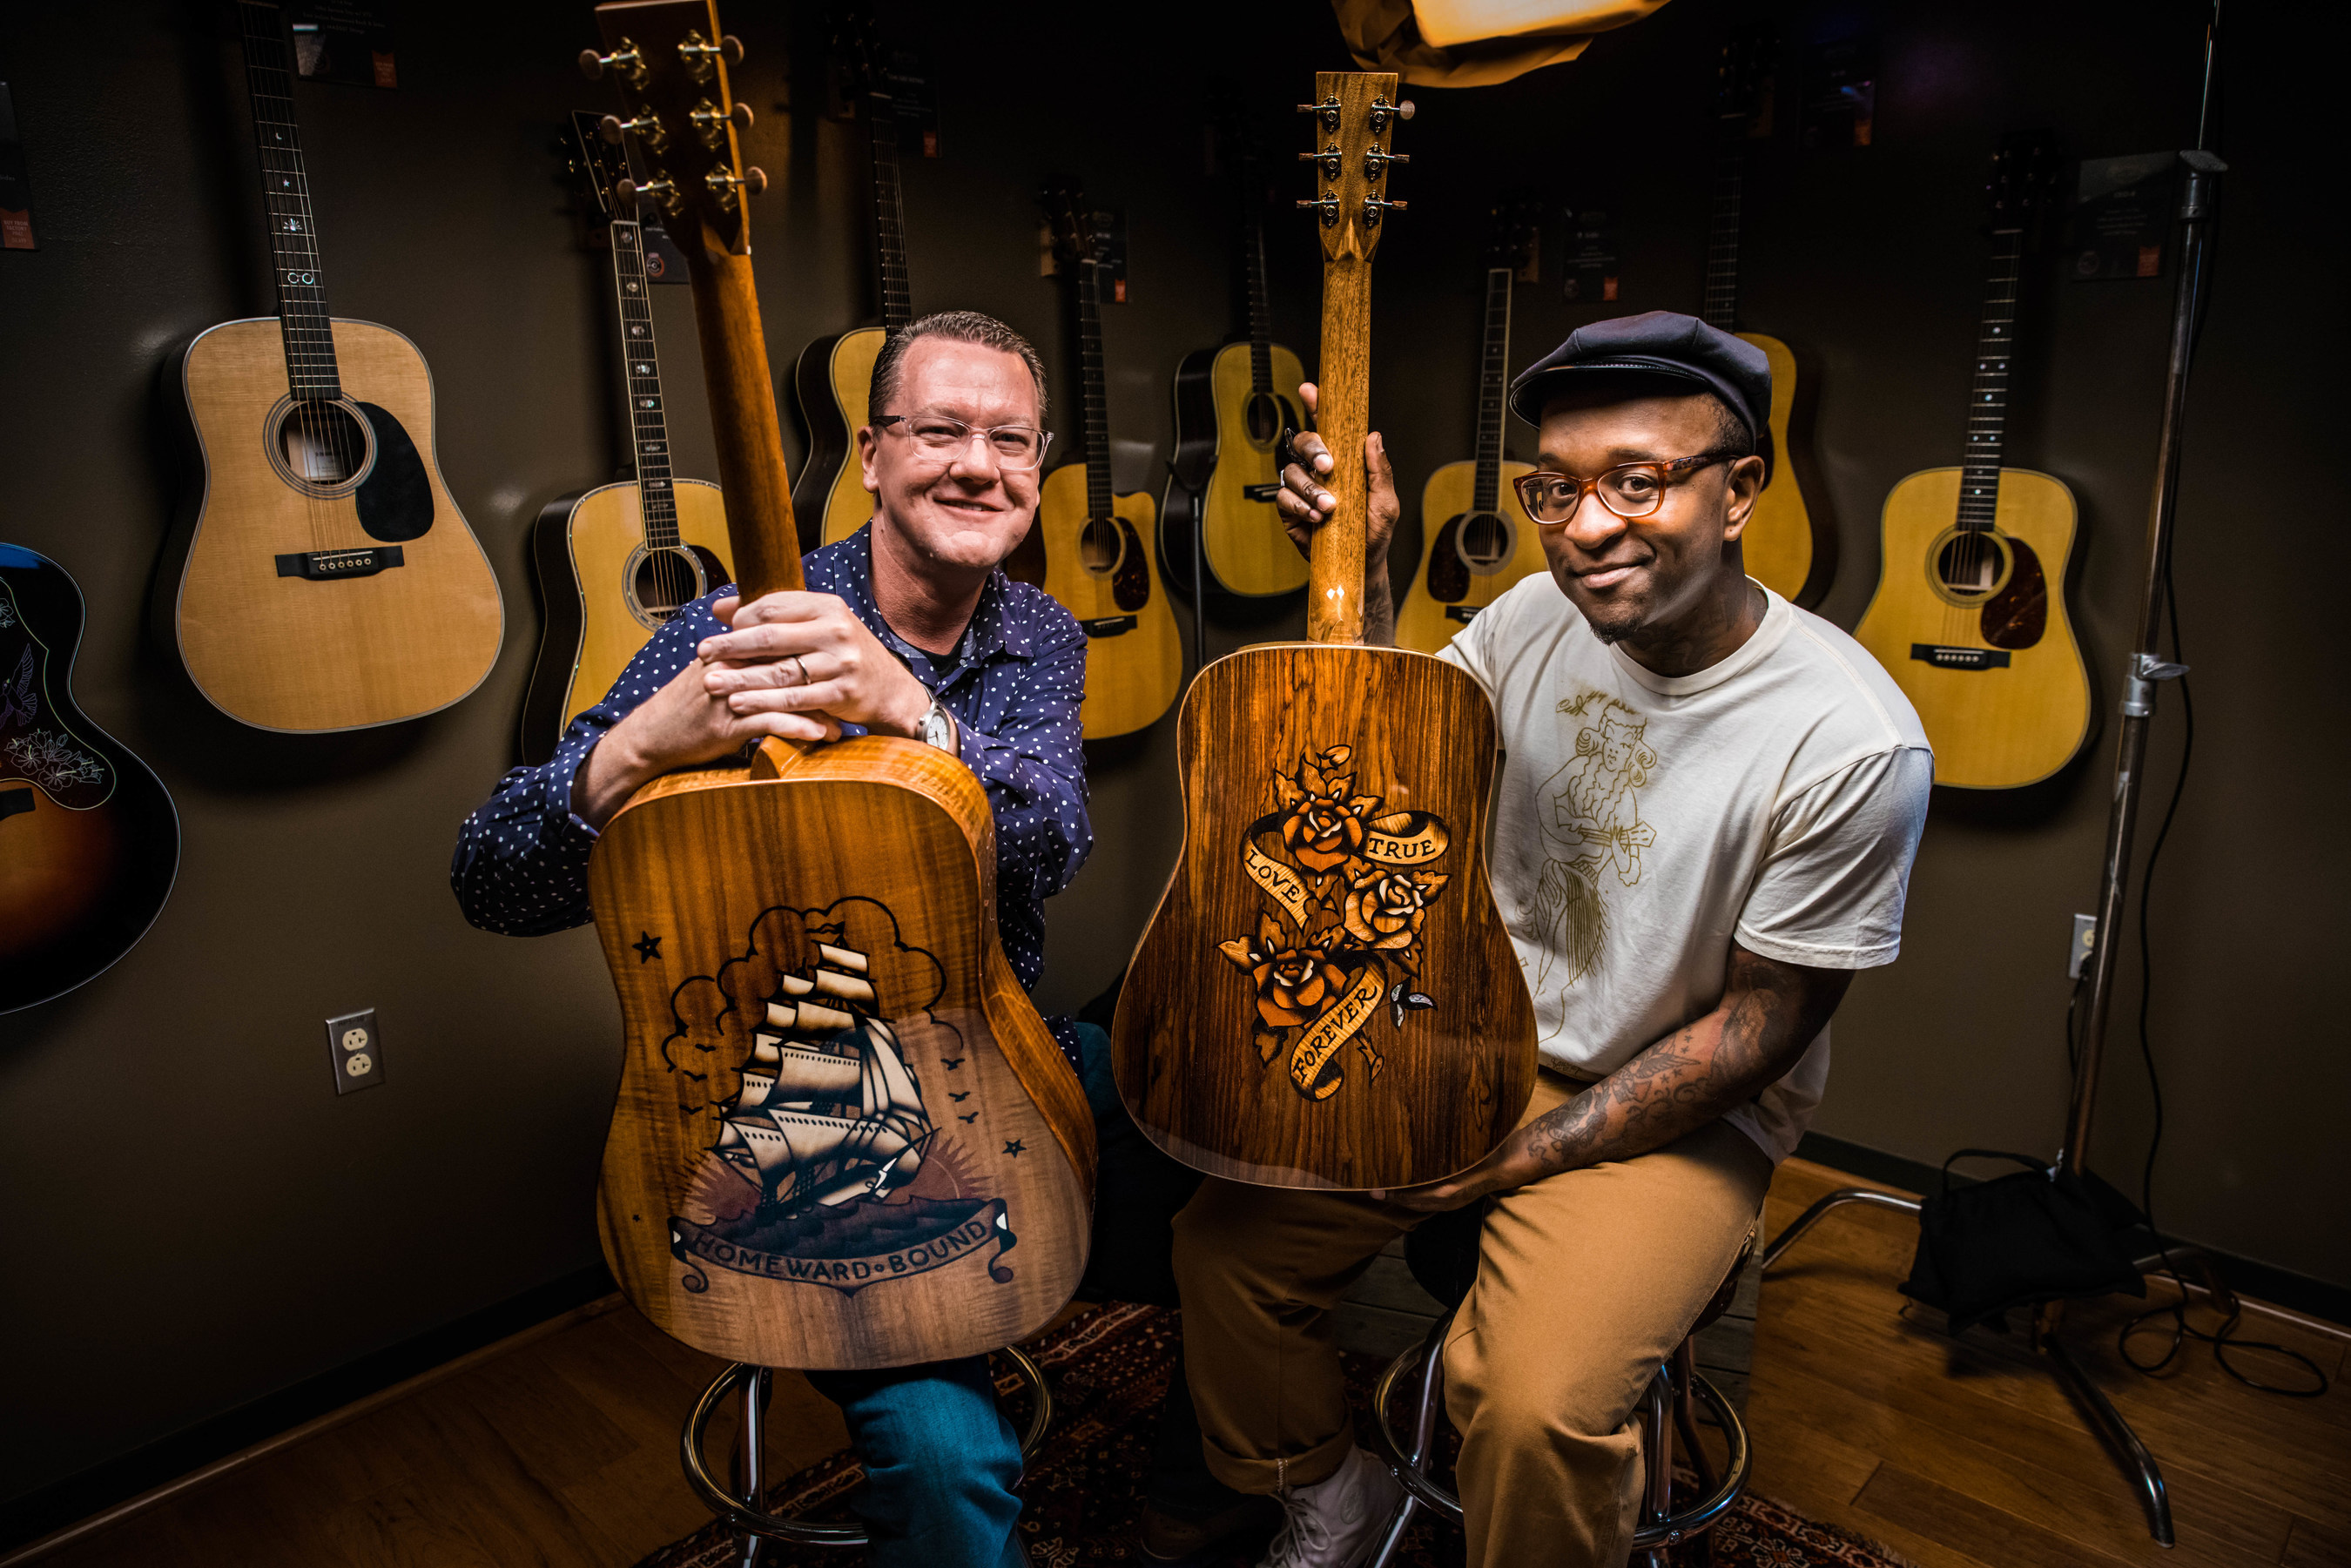 """Scott Sasser (left) of C.F. MARTIN & CO.® and Sailor Jerry Spiced Rum Ambassador, Daniel """"Gravy"""" Thomas (right) showcase the Ink & Wood special edition guitar series."""